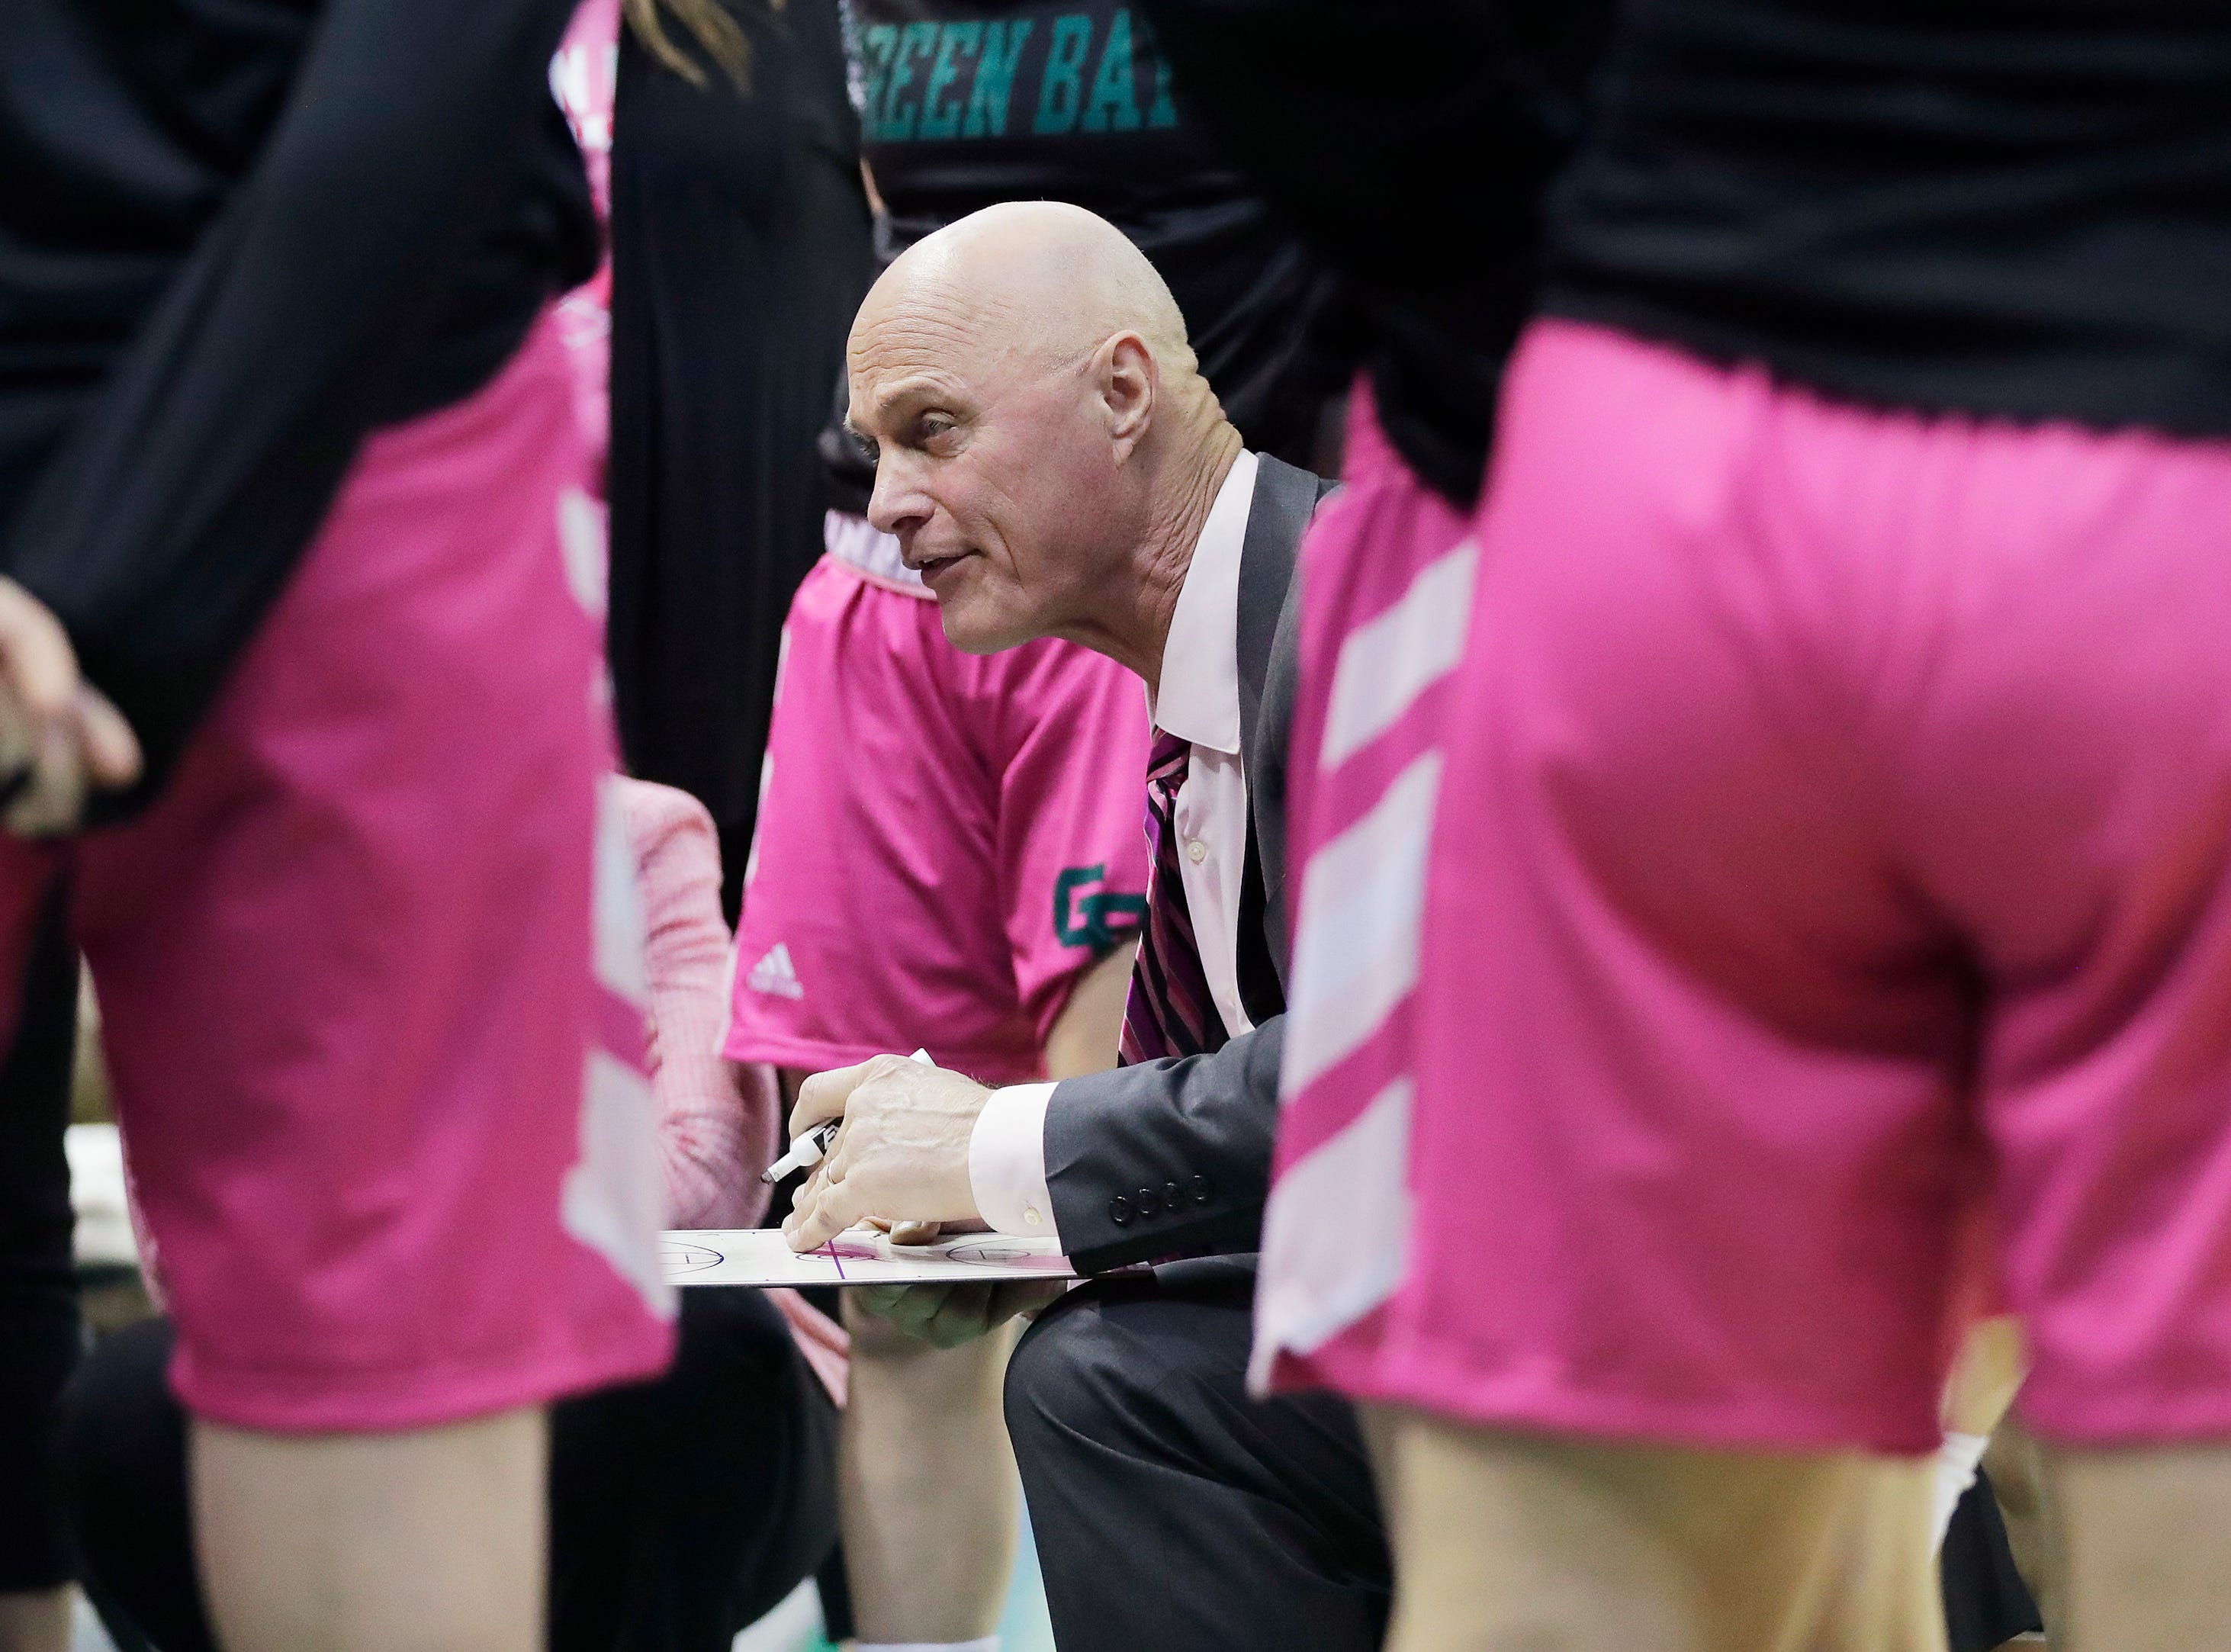 Green Bay Phoenix head coach Kevin Borseth talks during a timeout in the second half against the Wright State Raiders in a Horizon League women's basketball game at the Kress Center on Saturday, February 9, 2019 in Green Bay, Wis.